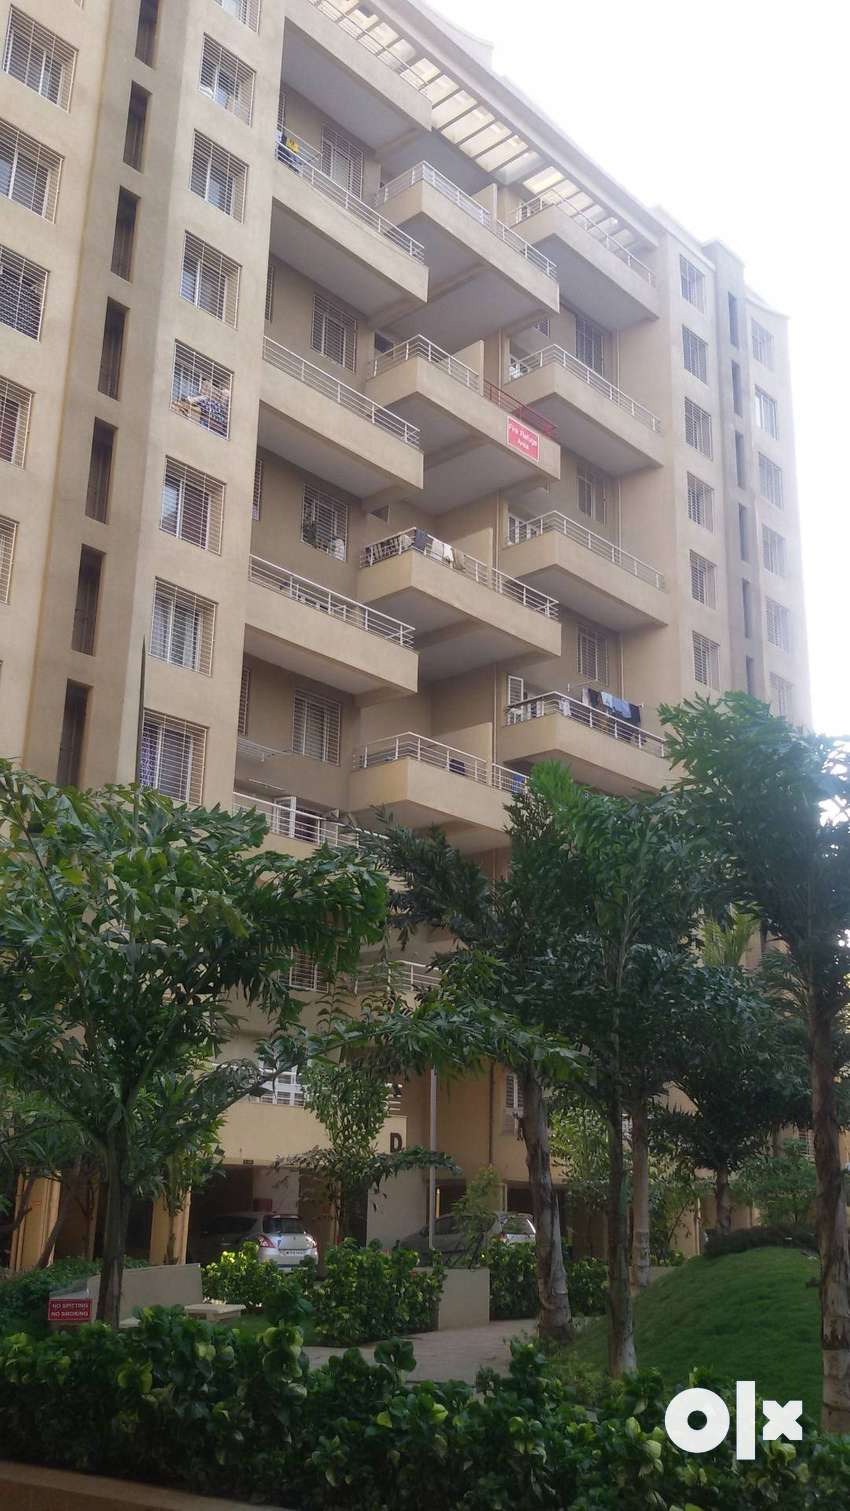 Penthouse ready to move in kondhwa 0